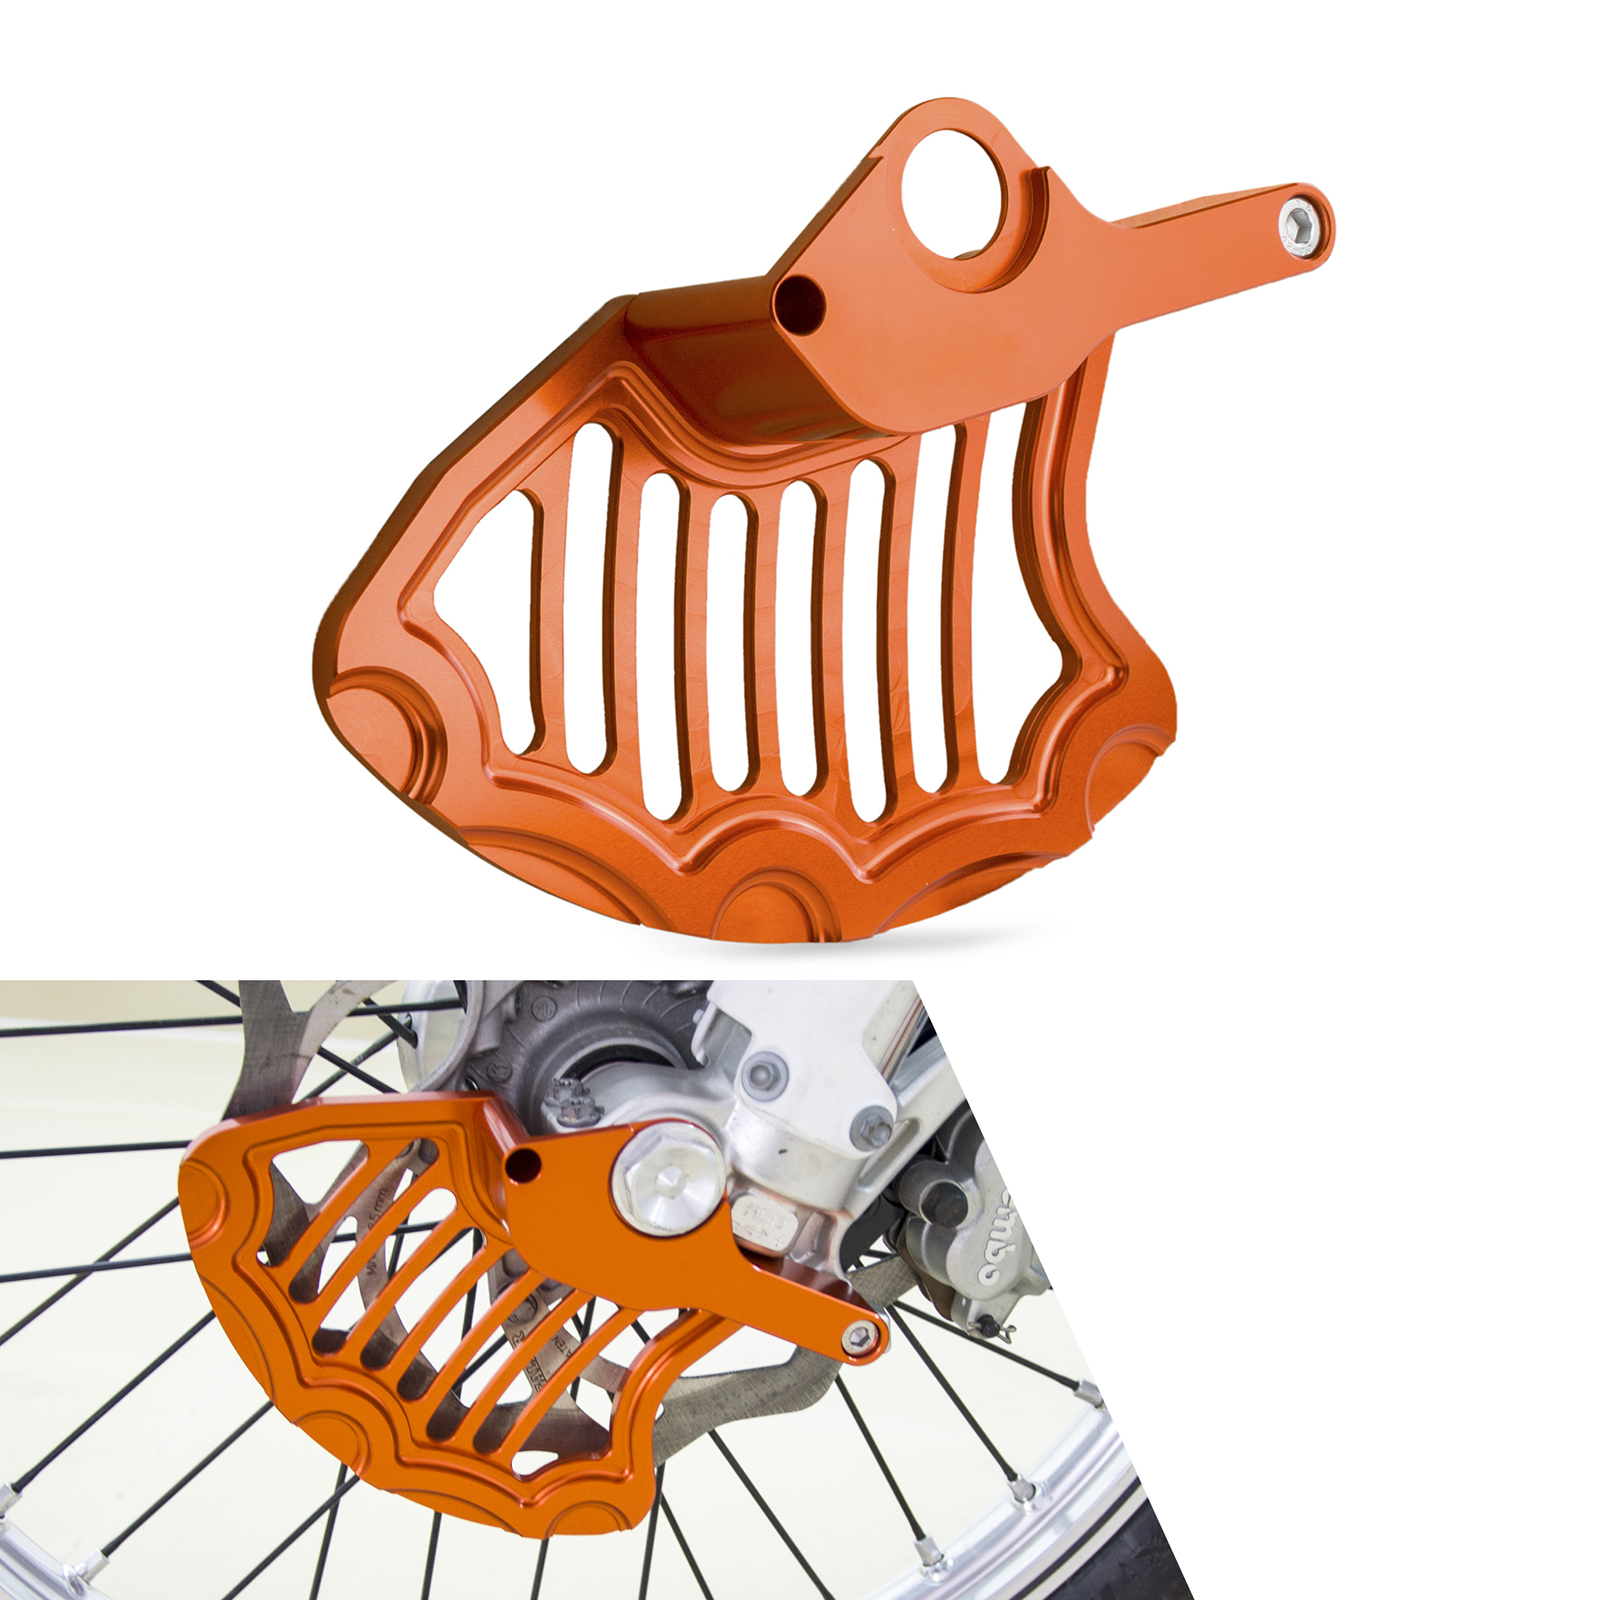 NICECNC Front Brake Disc Rotor Guard Cover For KTM 125 150 200 250 300 350 400 450 500 530 SX SX-F EXC EXC-F XC XC-F XC-W XCF-W